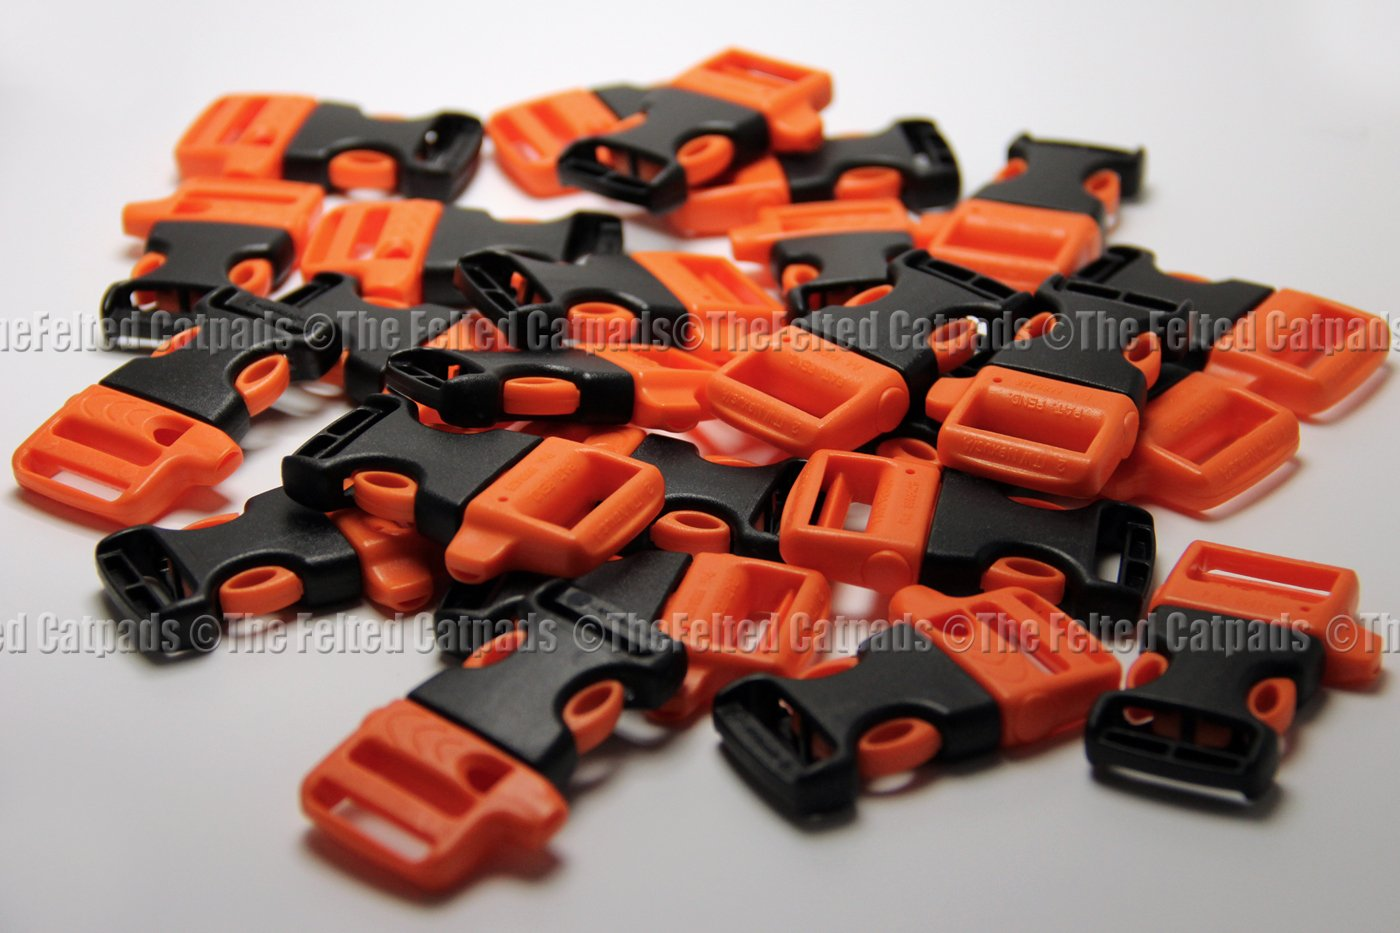 "Whistle Buckles 25 ITW Nexus WhistleLoc 3/4"" Orange - for Paracord Bracelets or Flat Webbing"